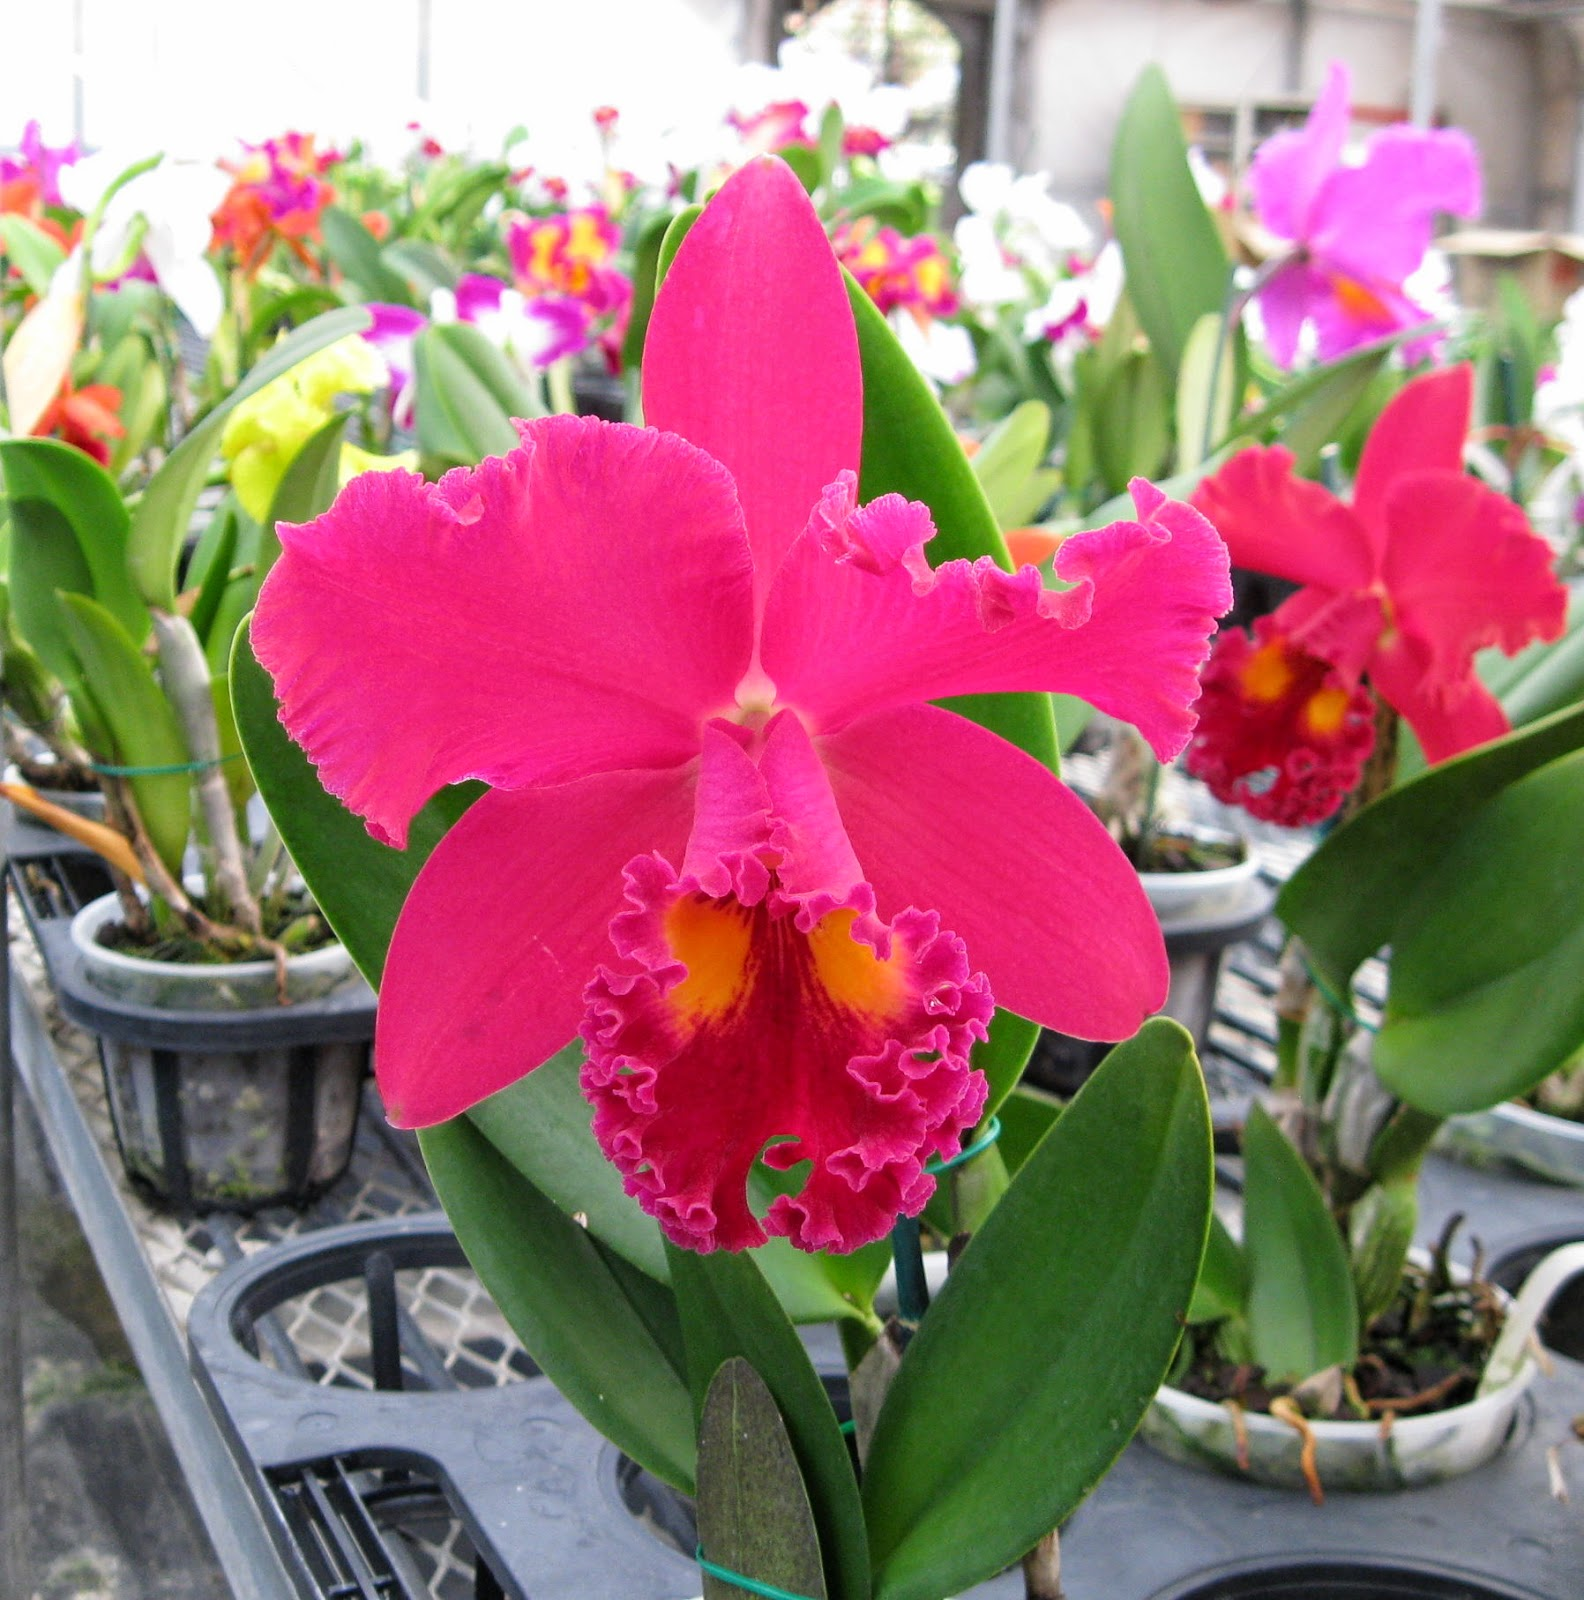 Rsc. Ahchung ruby Taiyoung Red Star orchid flowers